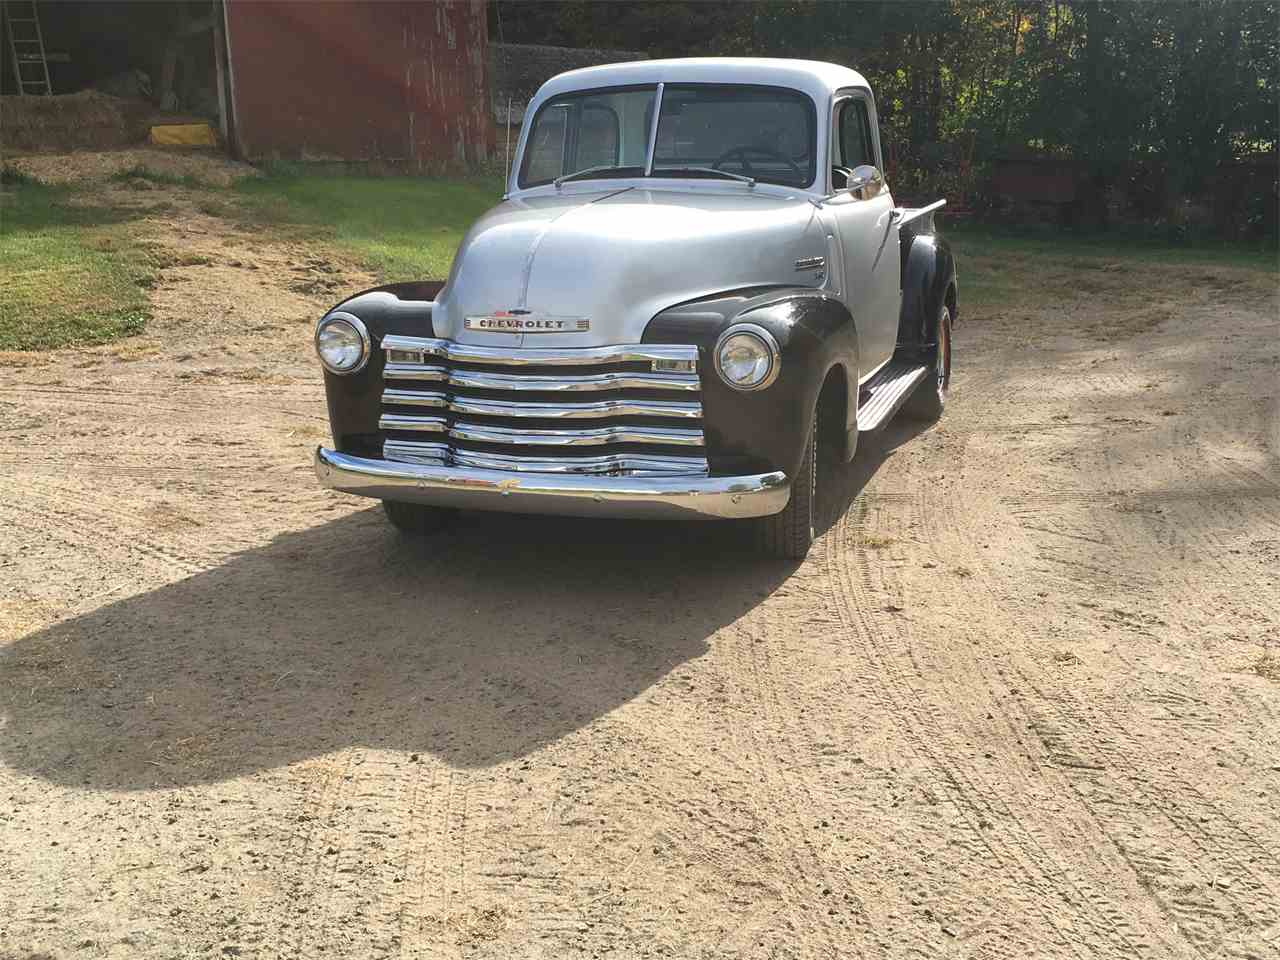 Large Picture of '51 Chevrolet 5-Window Pickup - $40,000.00 Offered by a Private Seller - MP3N